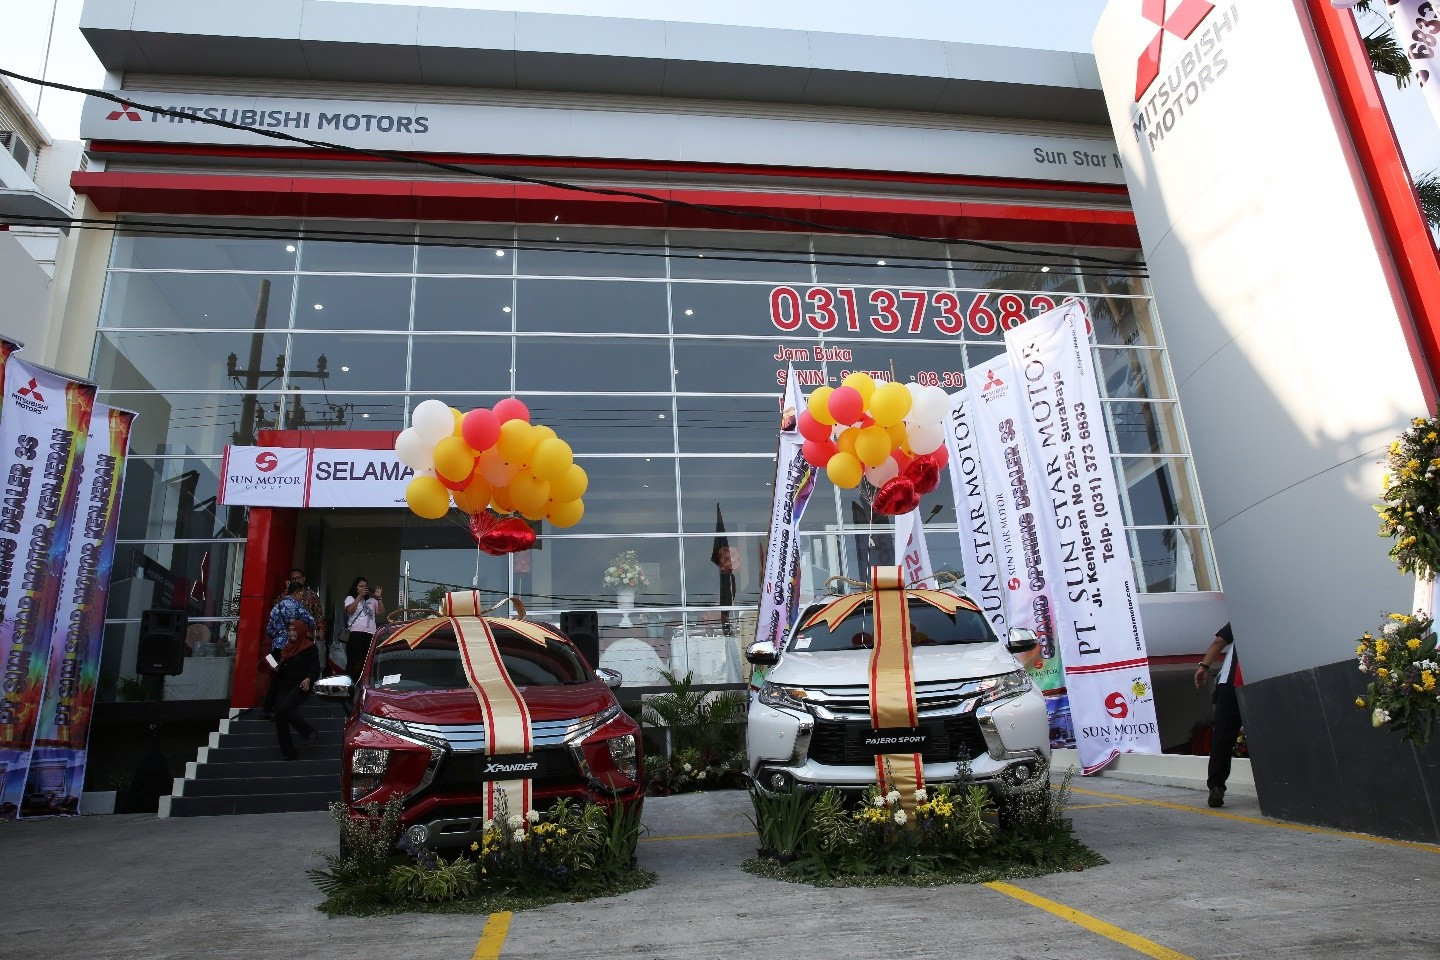 Mitsubishi Tambah 4 Diler Baru Dan Fasilitas Training Center